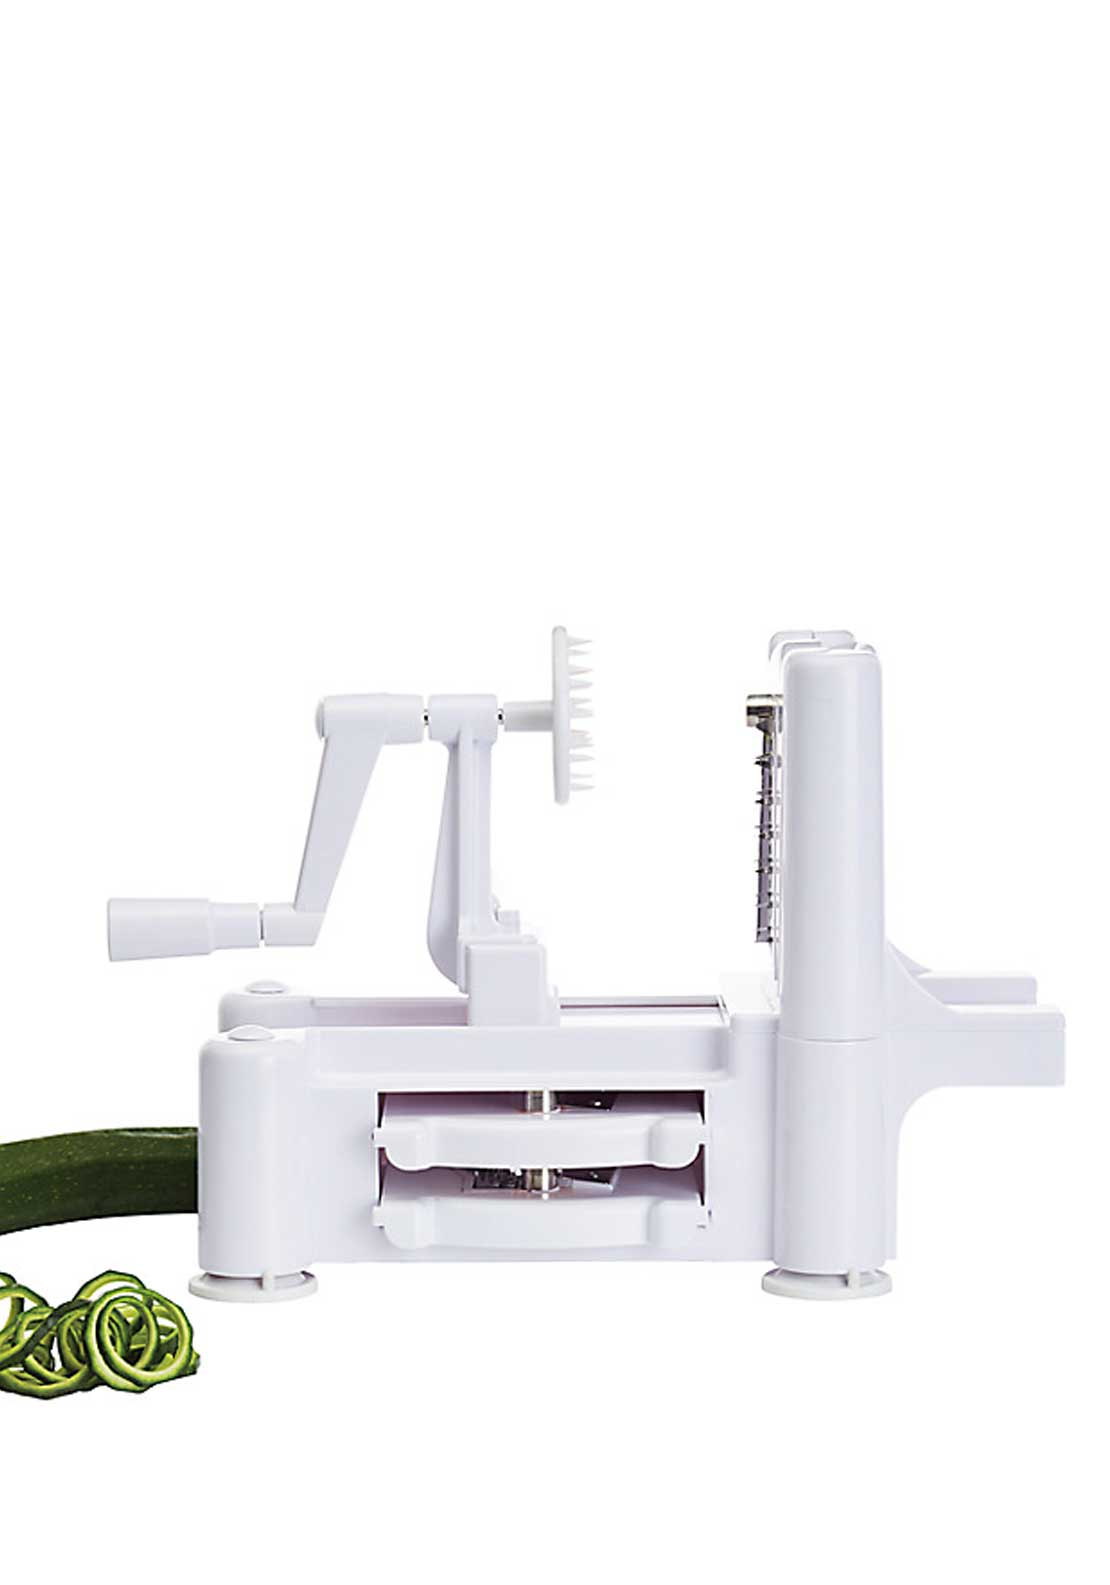 KitchenCraft Spiralizer Spiral Slicer